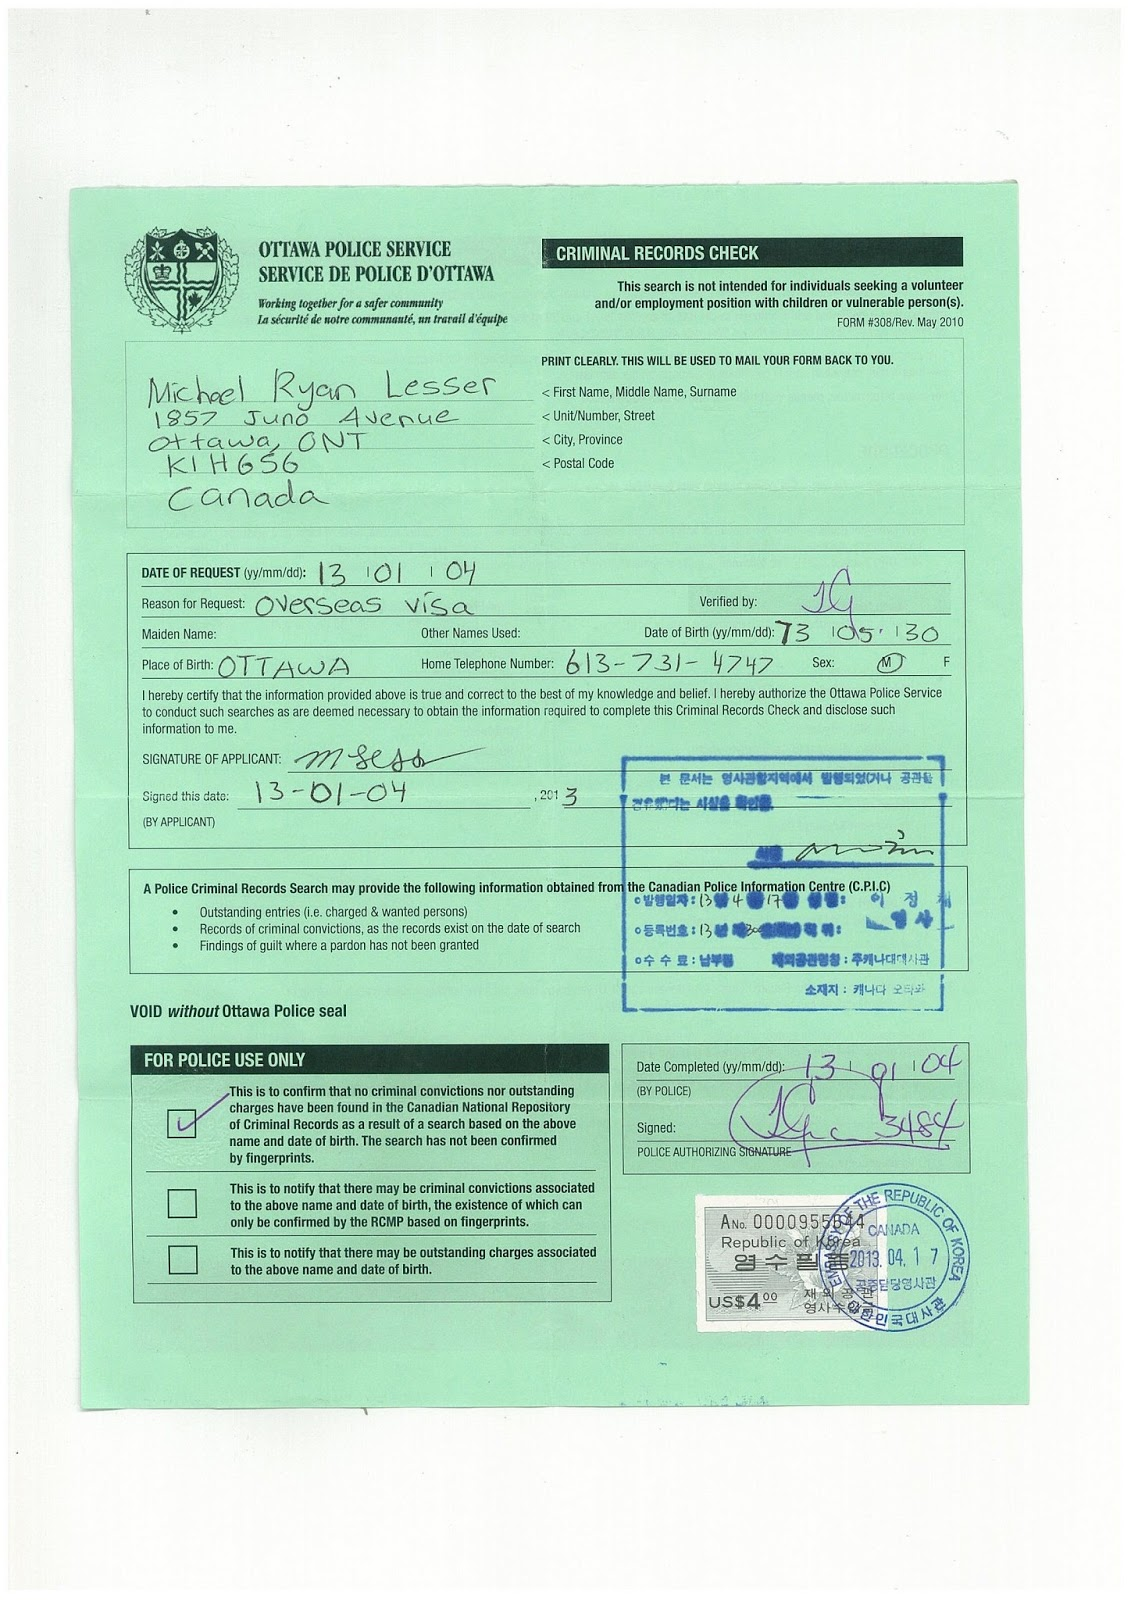 what is included in a criminal record check